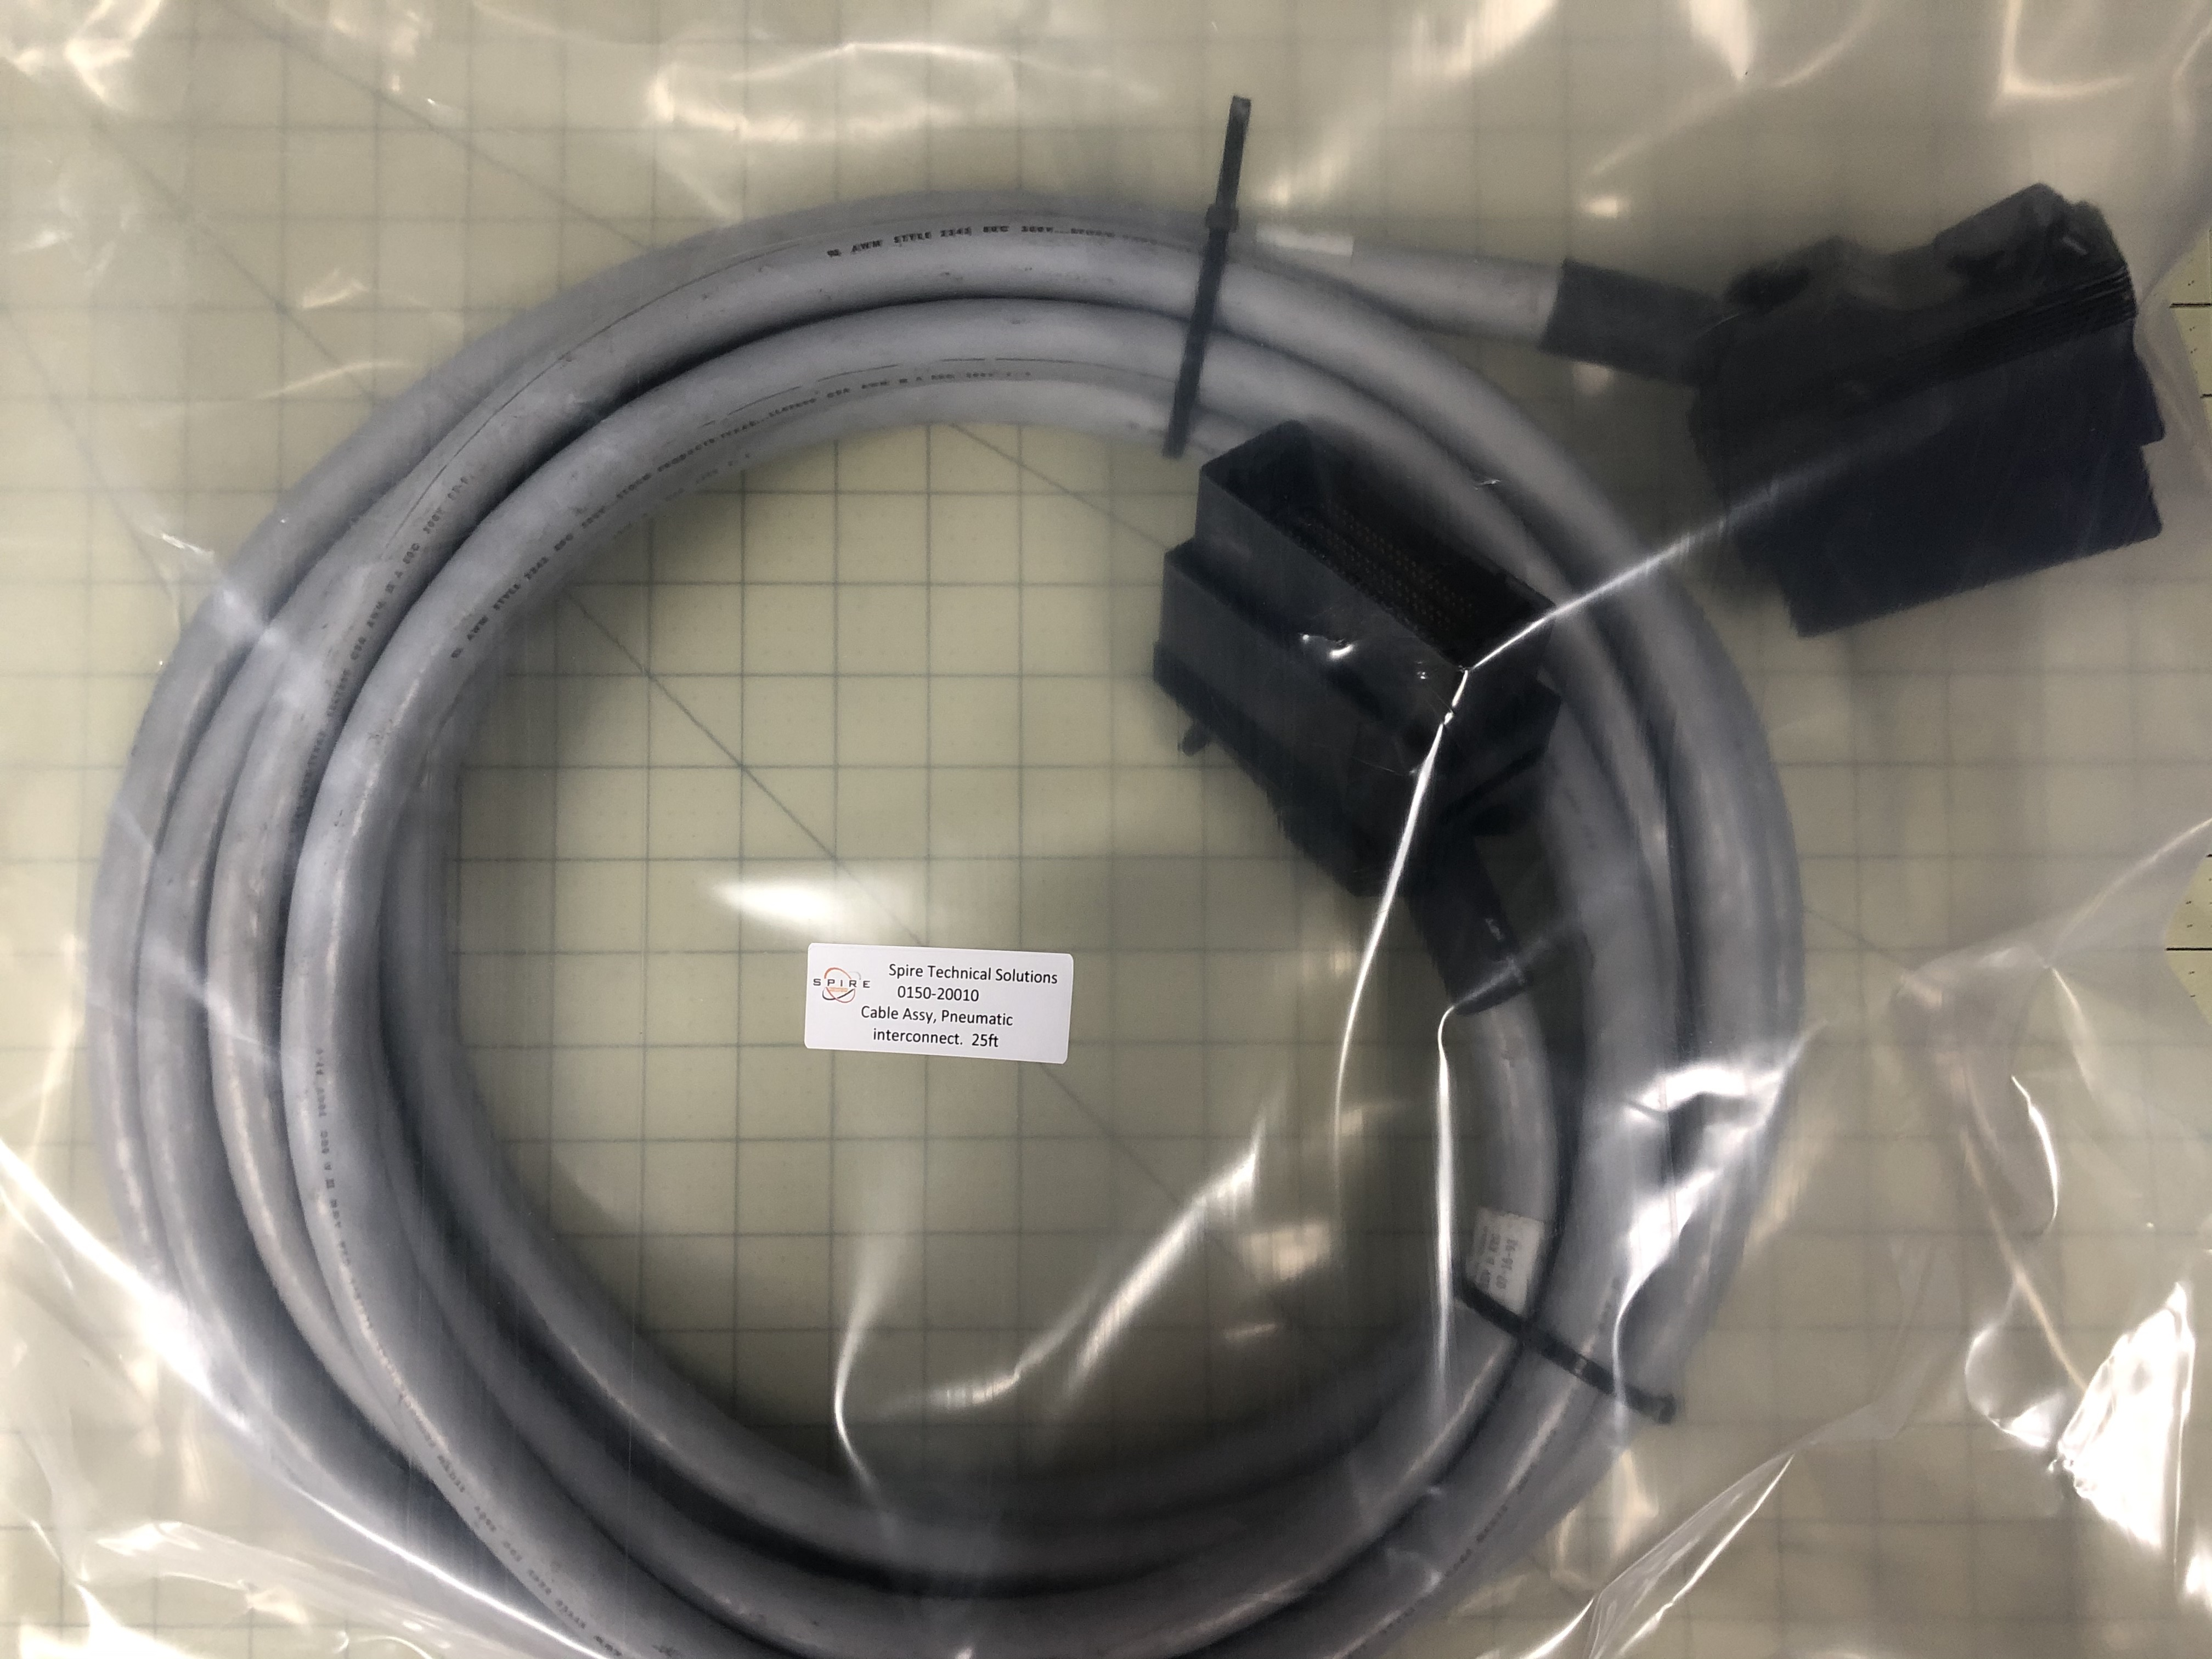 Cable Assy, Pneumatic interconnect.  25ft